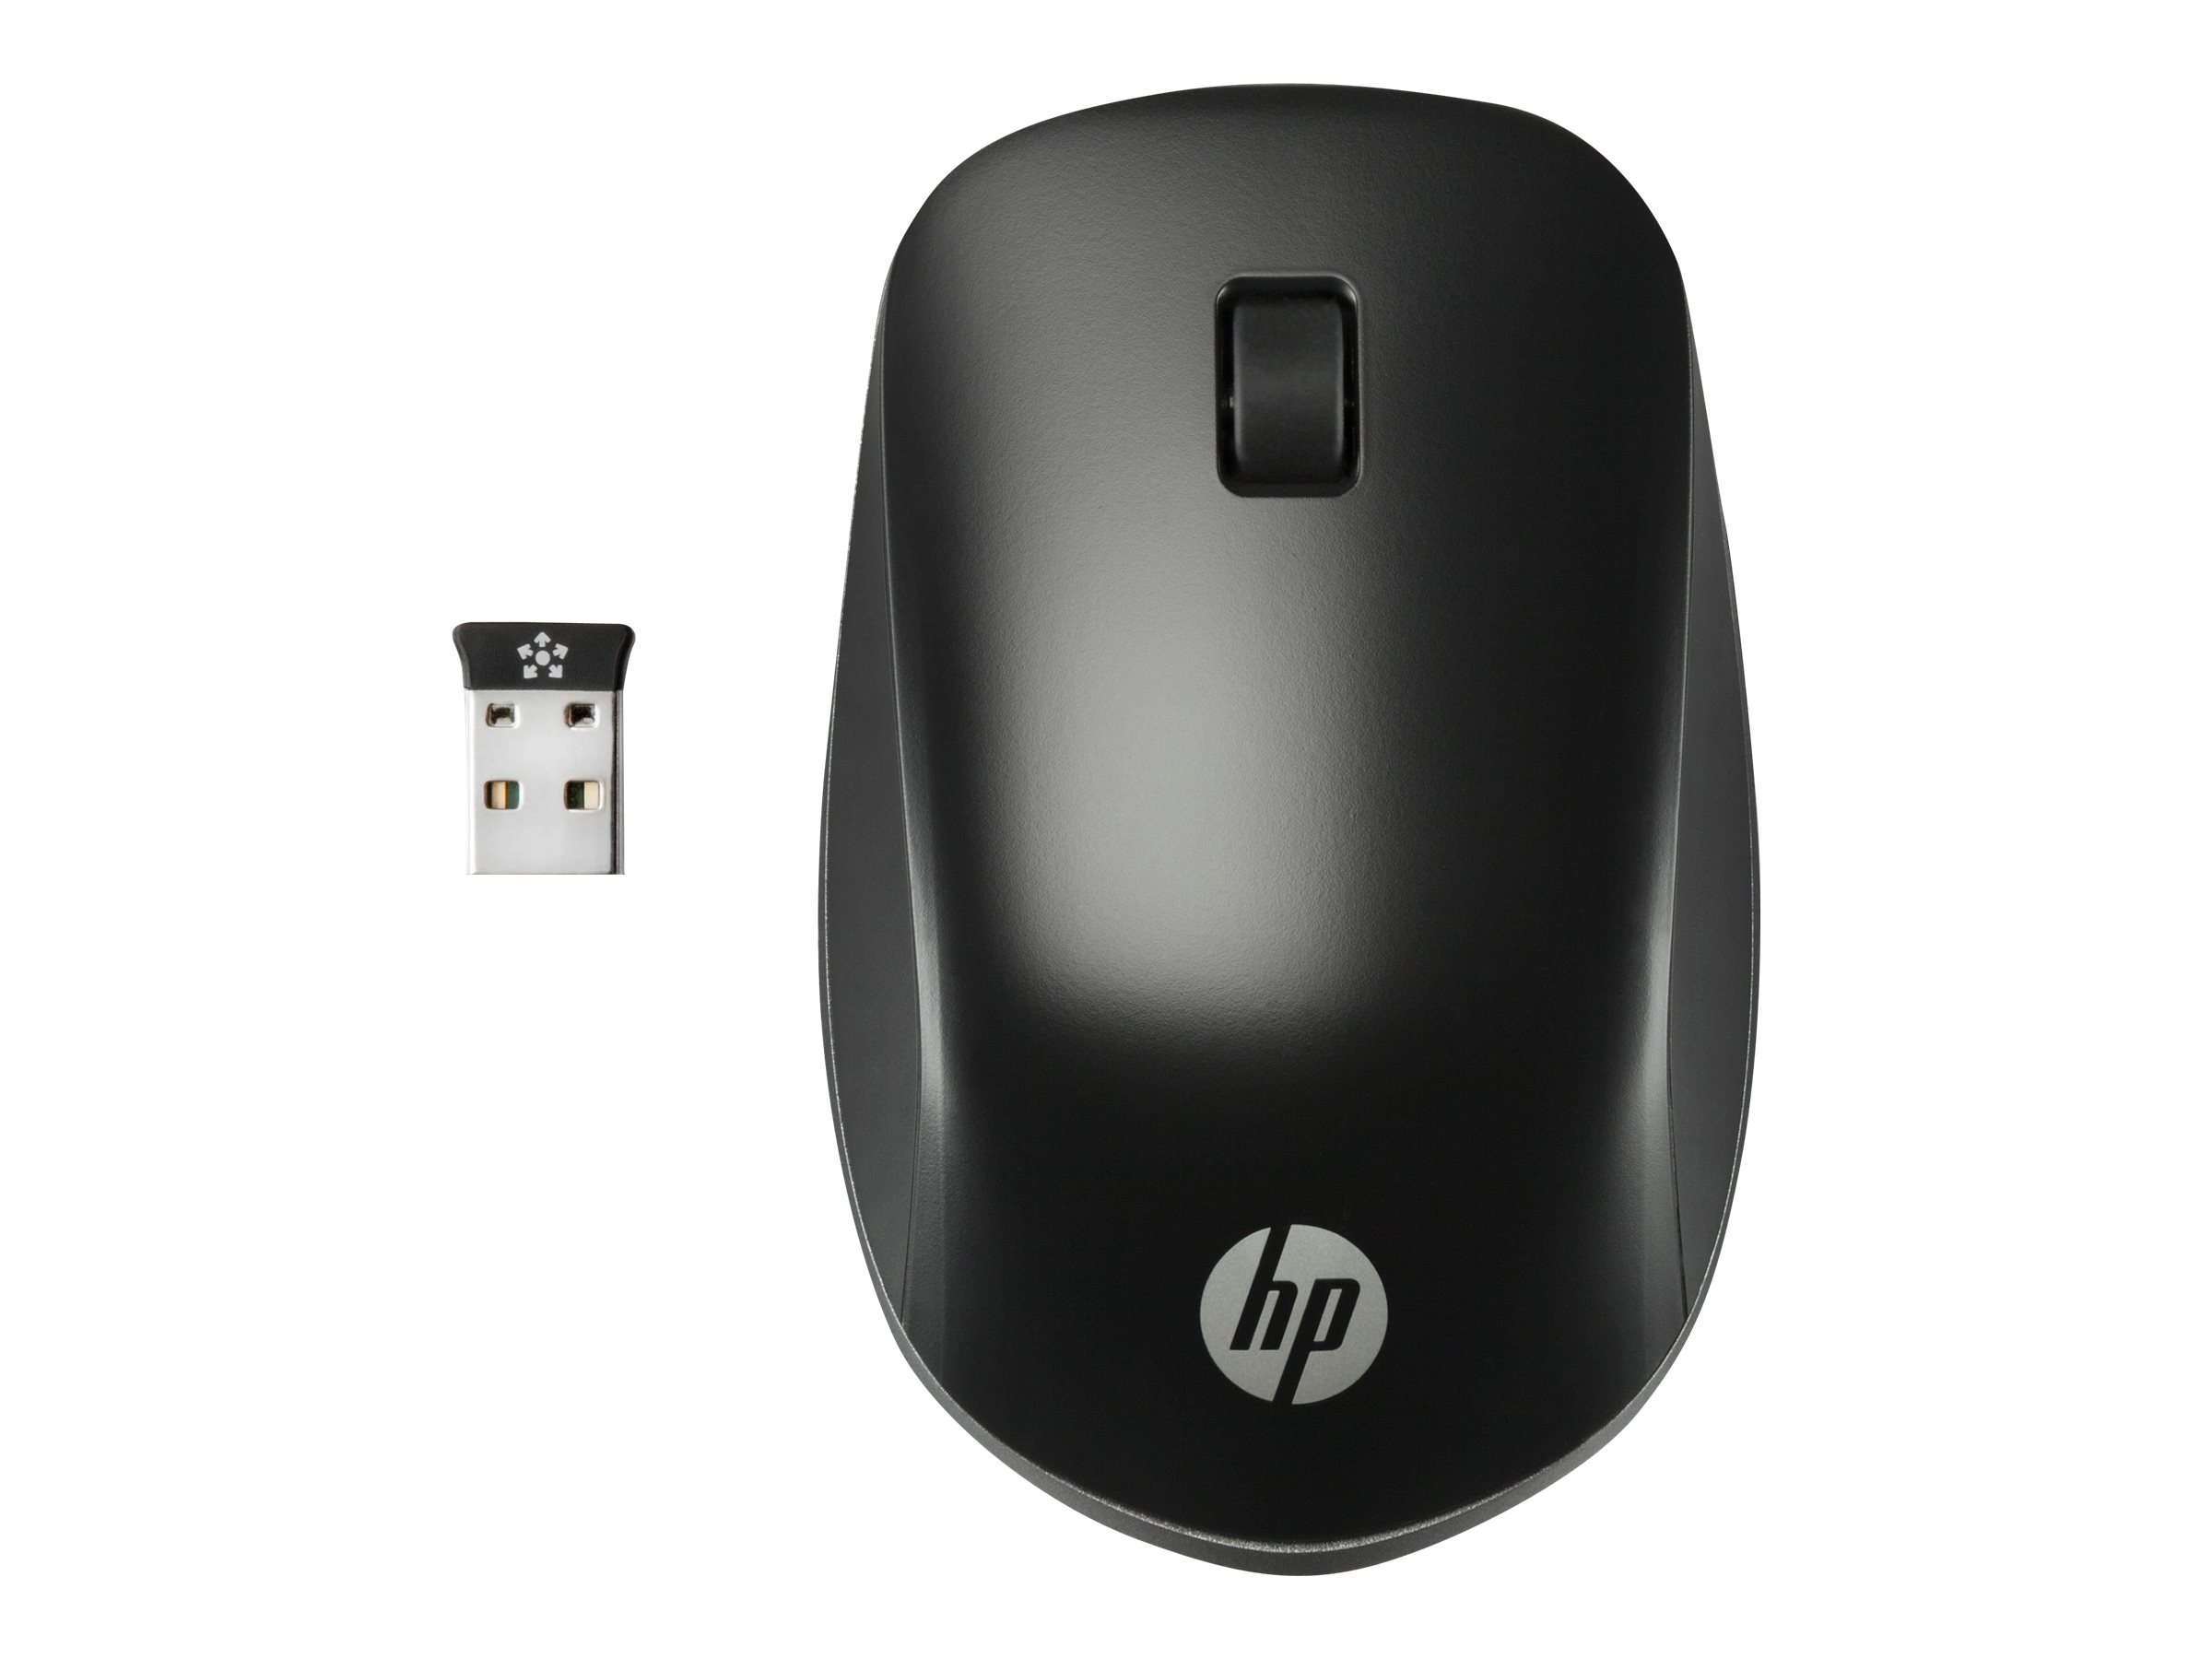 HP Ultra Mobile - mouse - 2.4 GHz